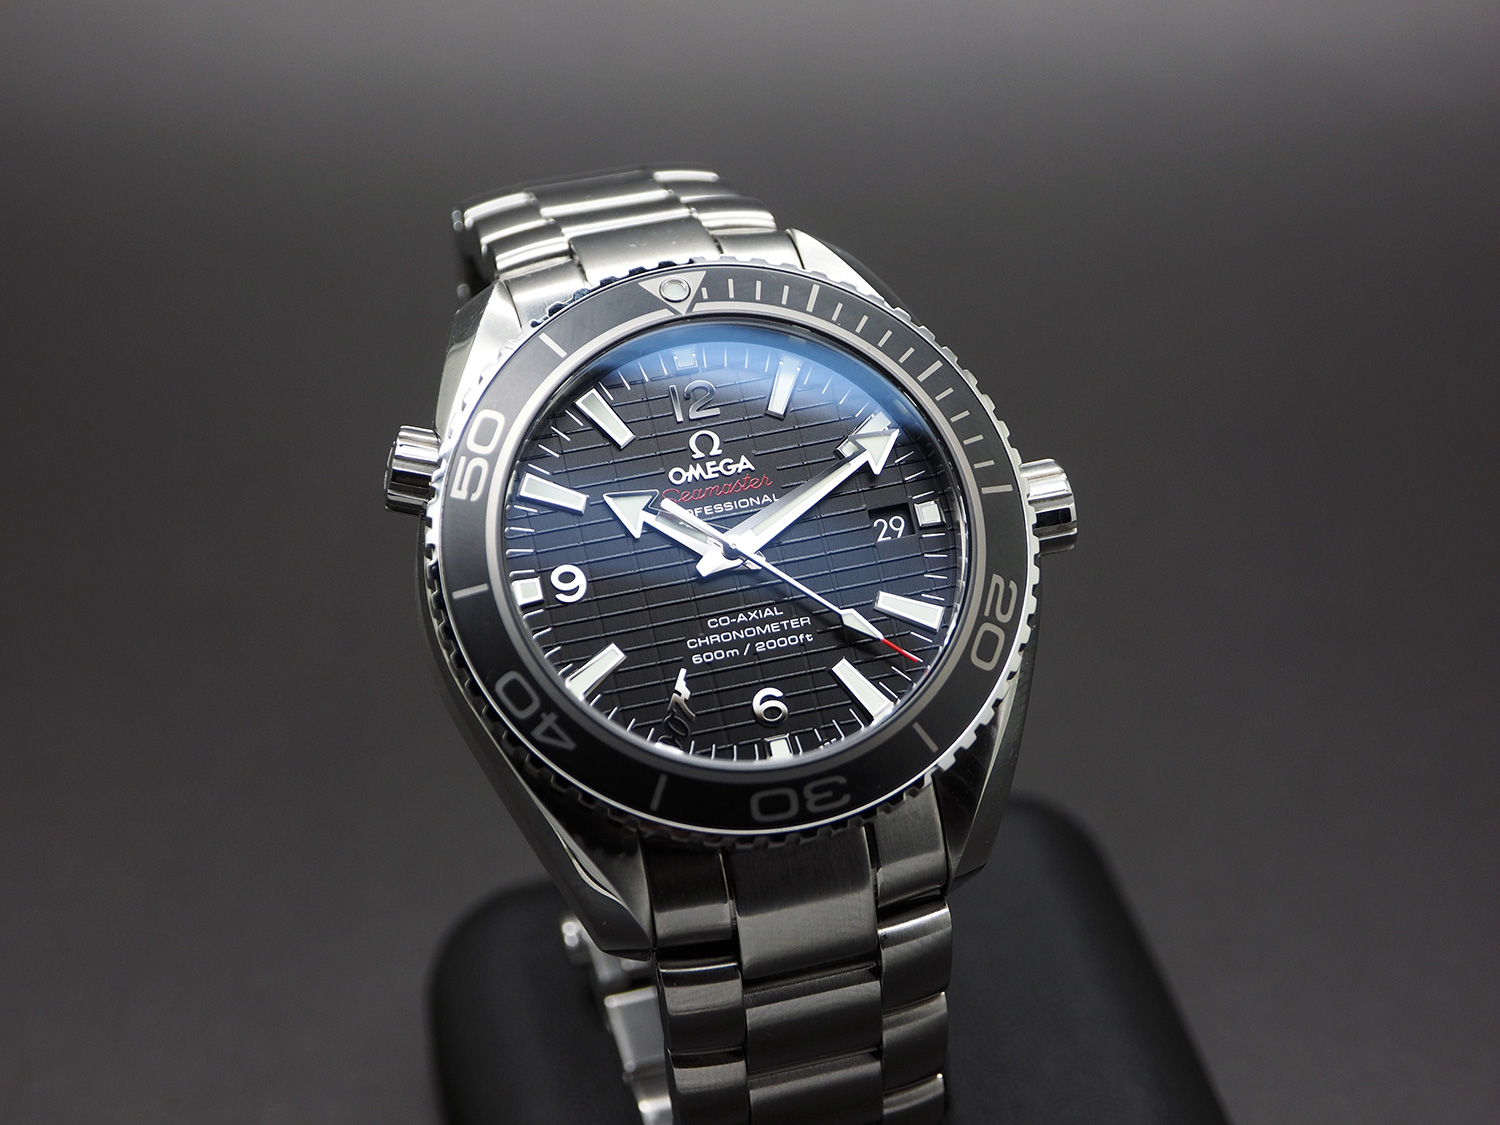 Omega Seamaster Planet Ocean Automatic Black Ceramic 42 mm 007 SKYFALL Limited Edition 1